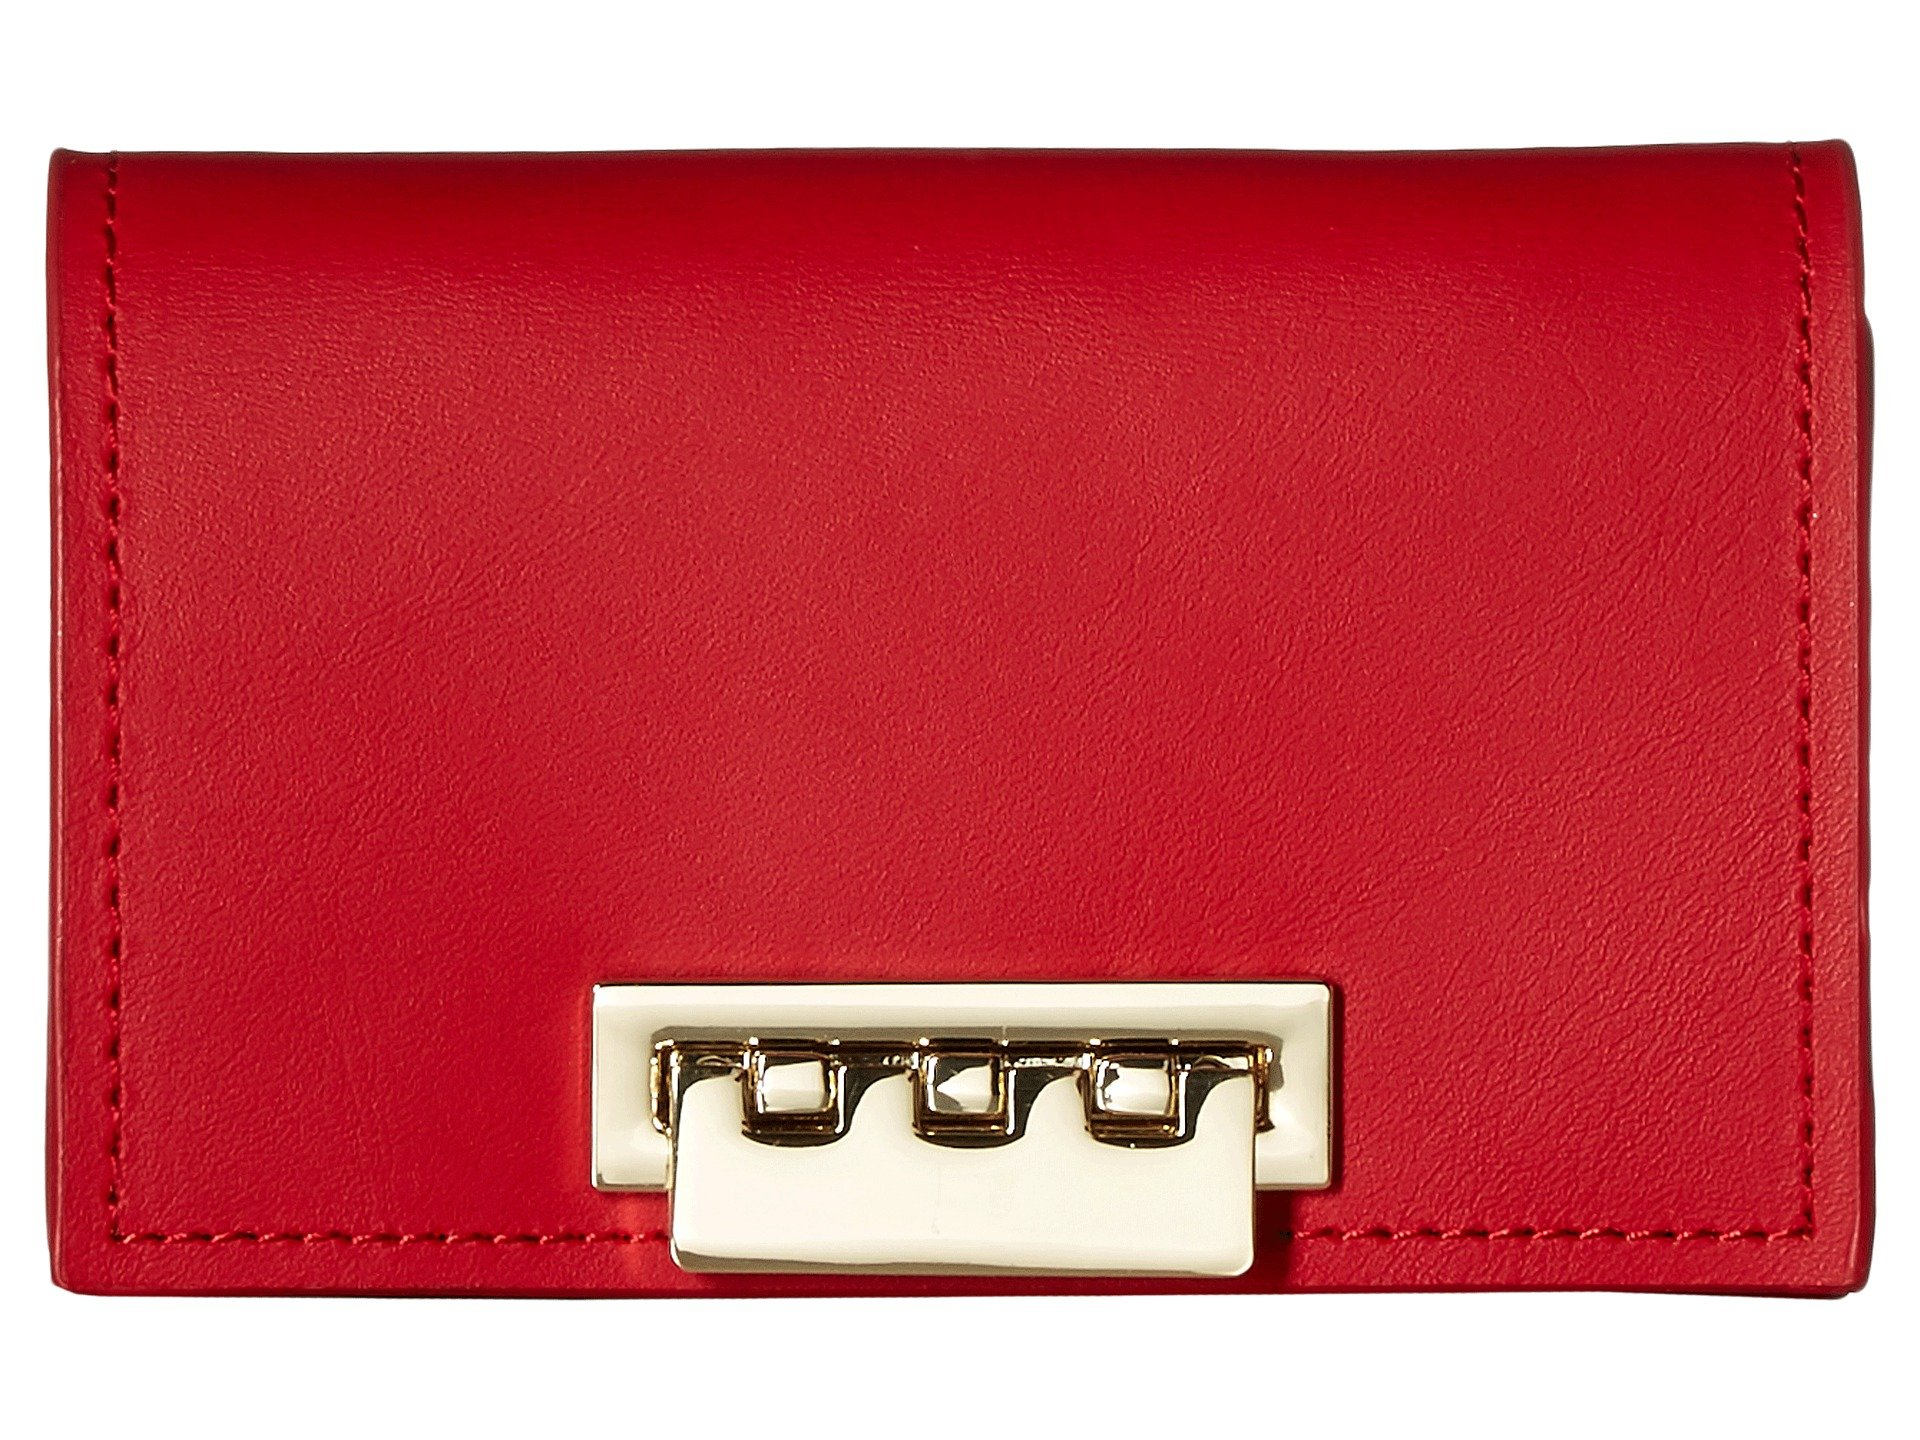 Monedero para Mujer ZAC Zac Posen Earthette Credit Card Case with Chain  + ZAC Zac Posen en VeoyCompro.net